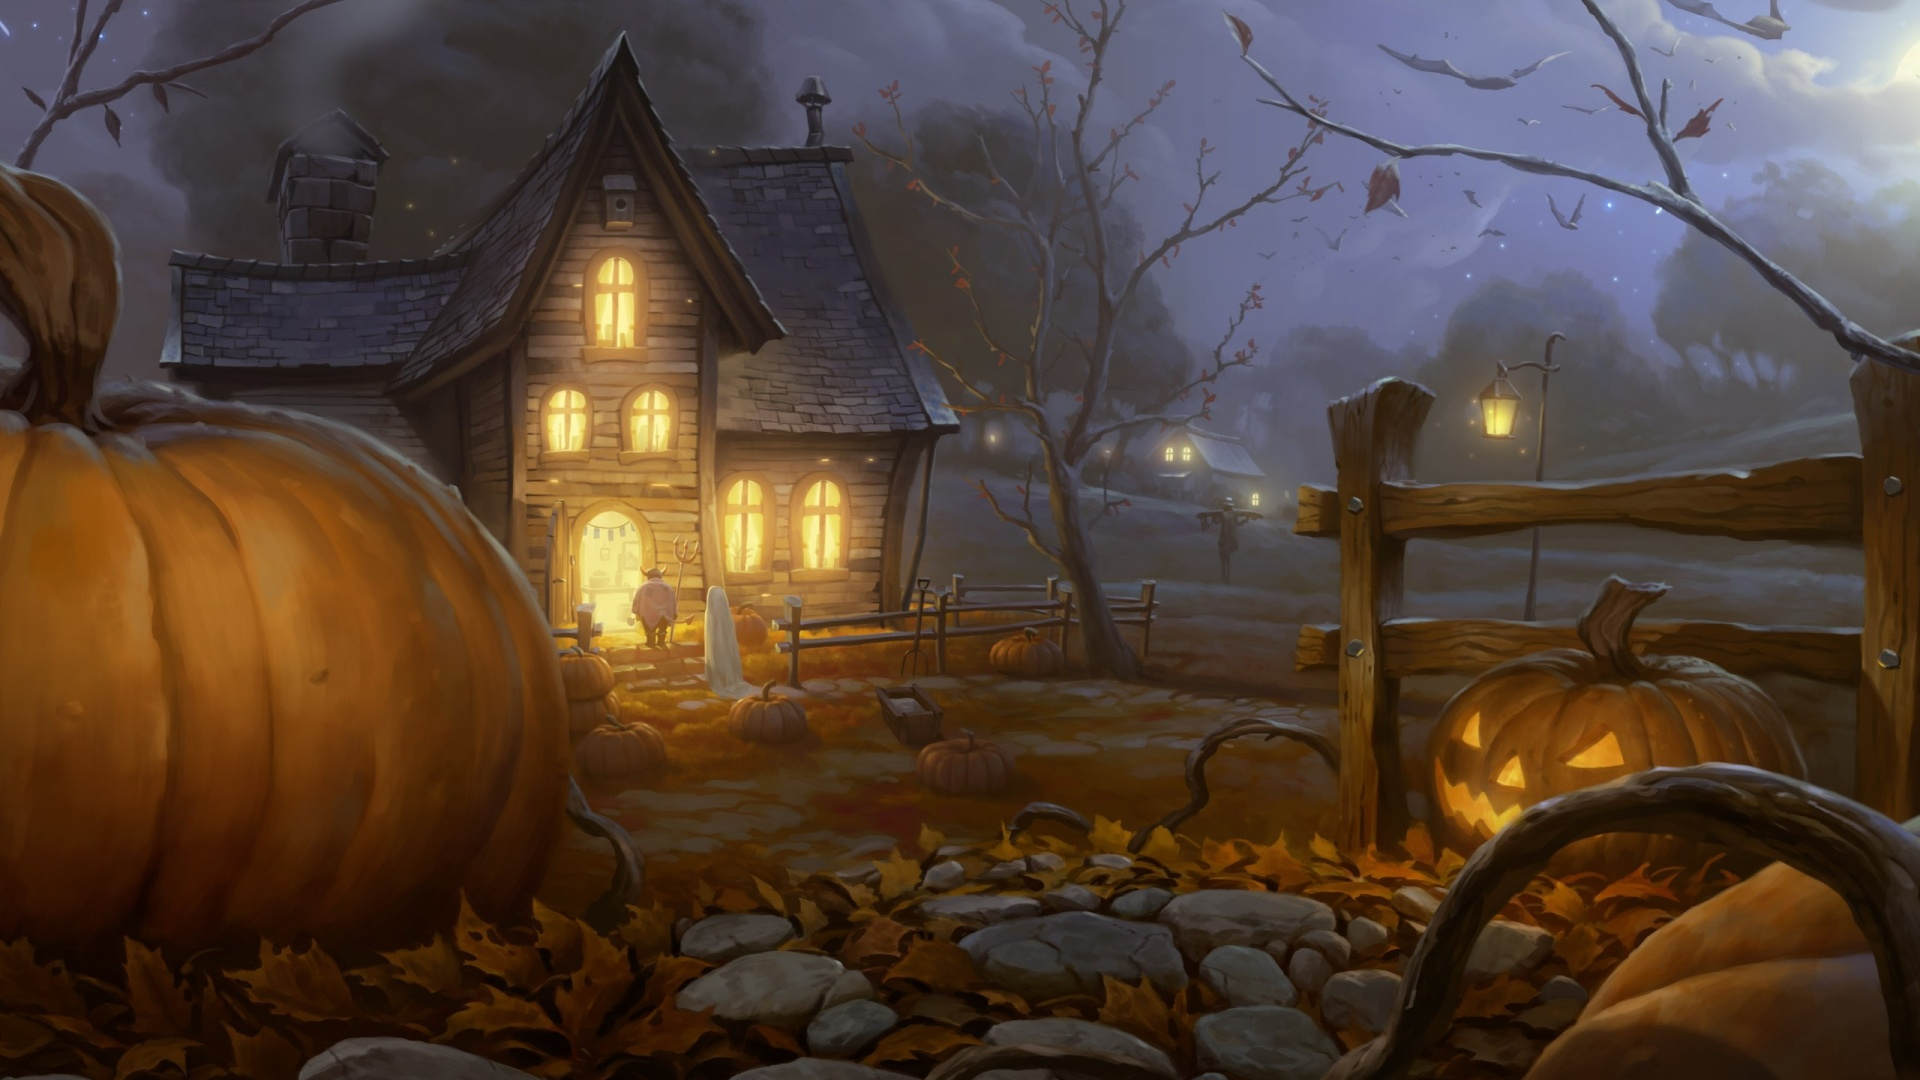 Happy-Halloween-Yahoo-Image-Search-Results-wallpaper-wp3806256